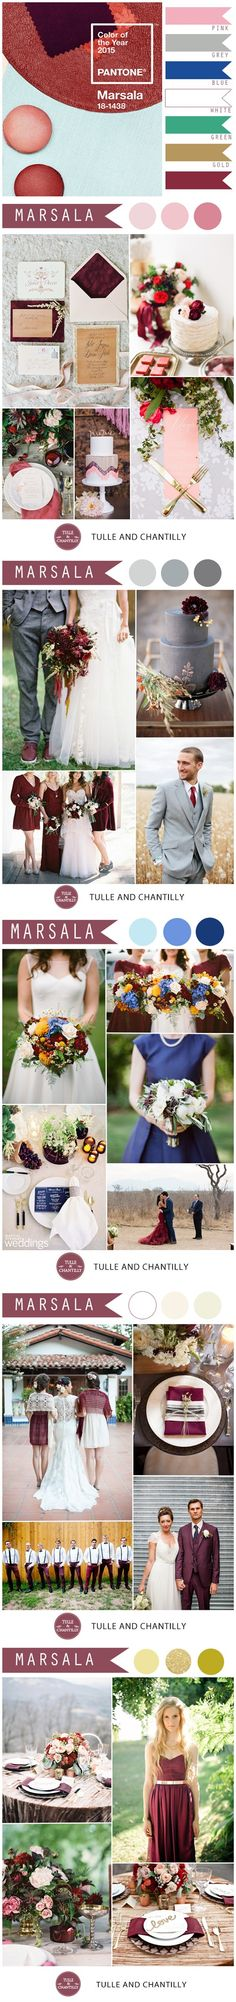 2015 wedding color ideas - Pantone Marsala Wedding Color Combo Ideas – Color of the Year 2015